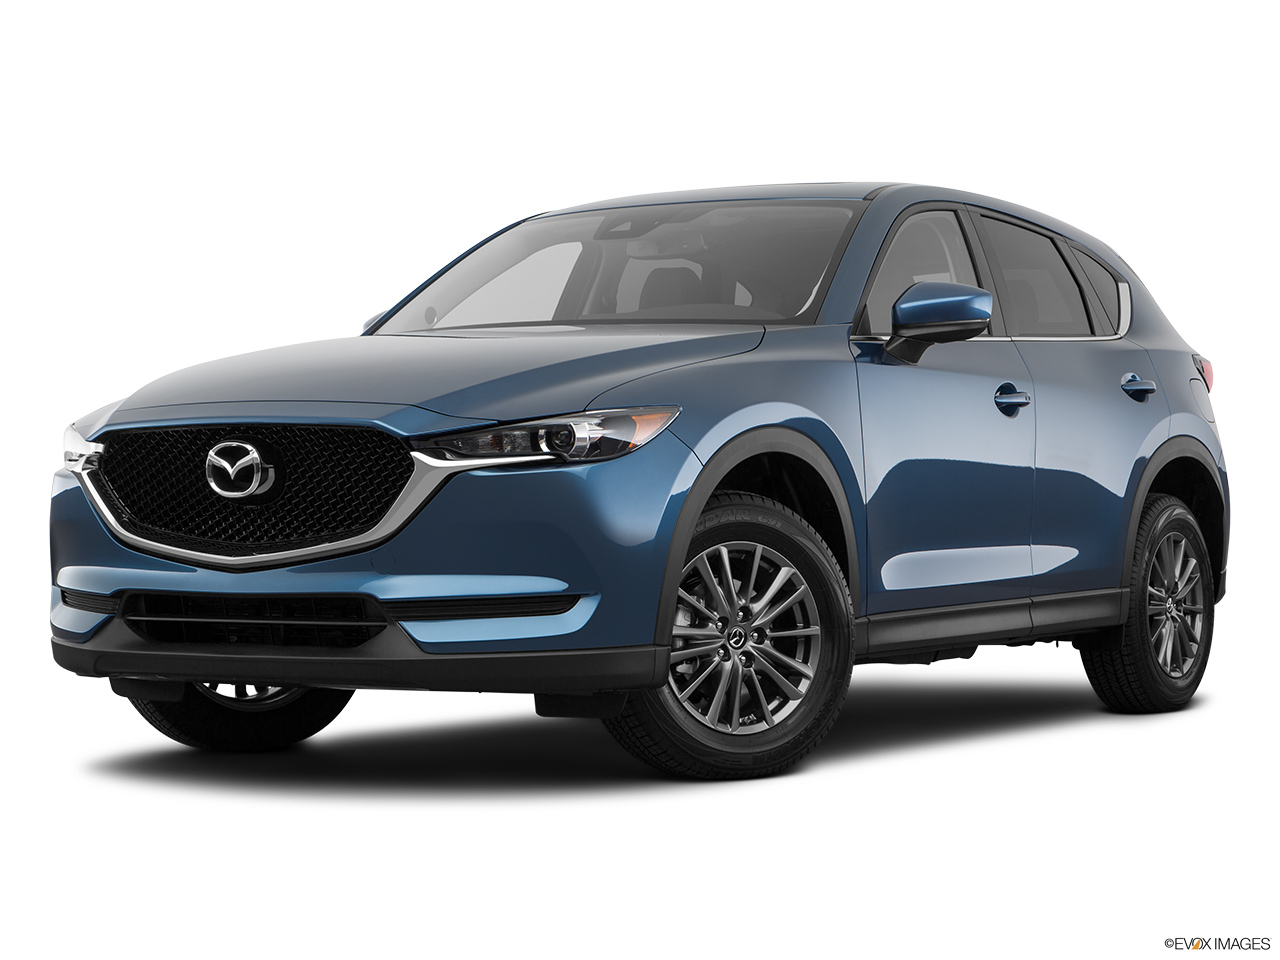 Cheapest Car To Lease >> Lease a 2018 Mazda CX-5 GX Automatic AWD in Canada | Canada LeaseCosts